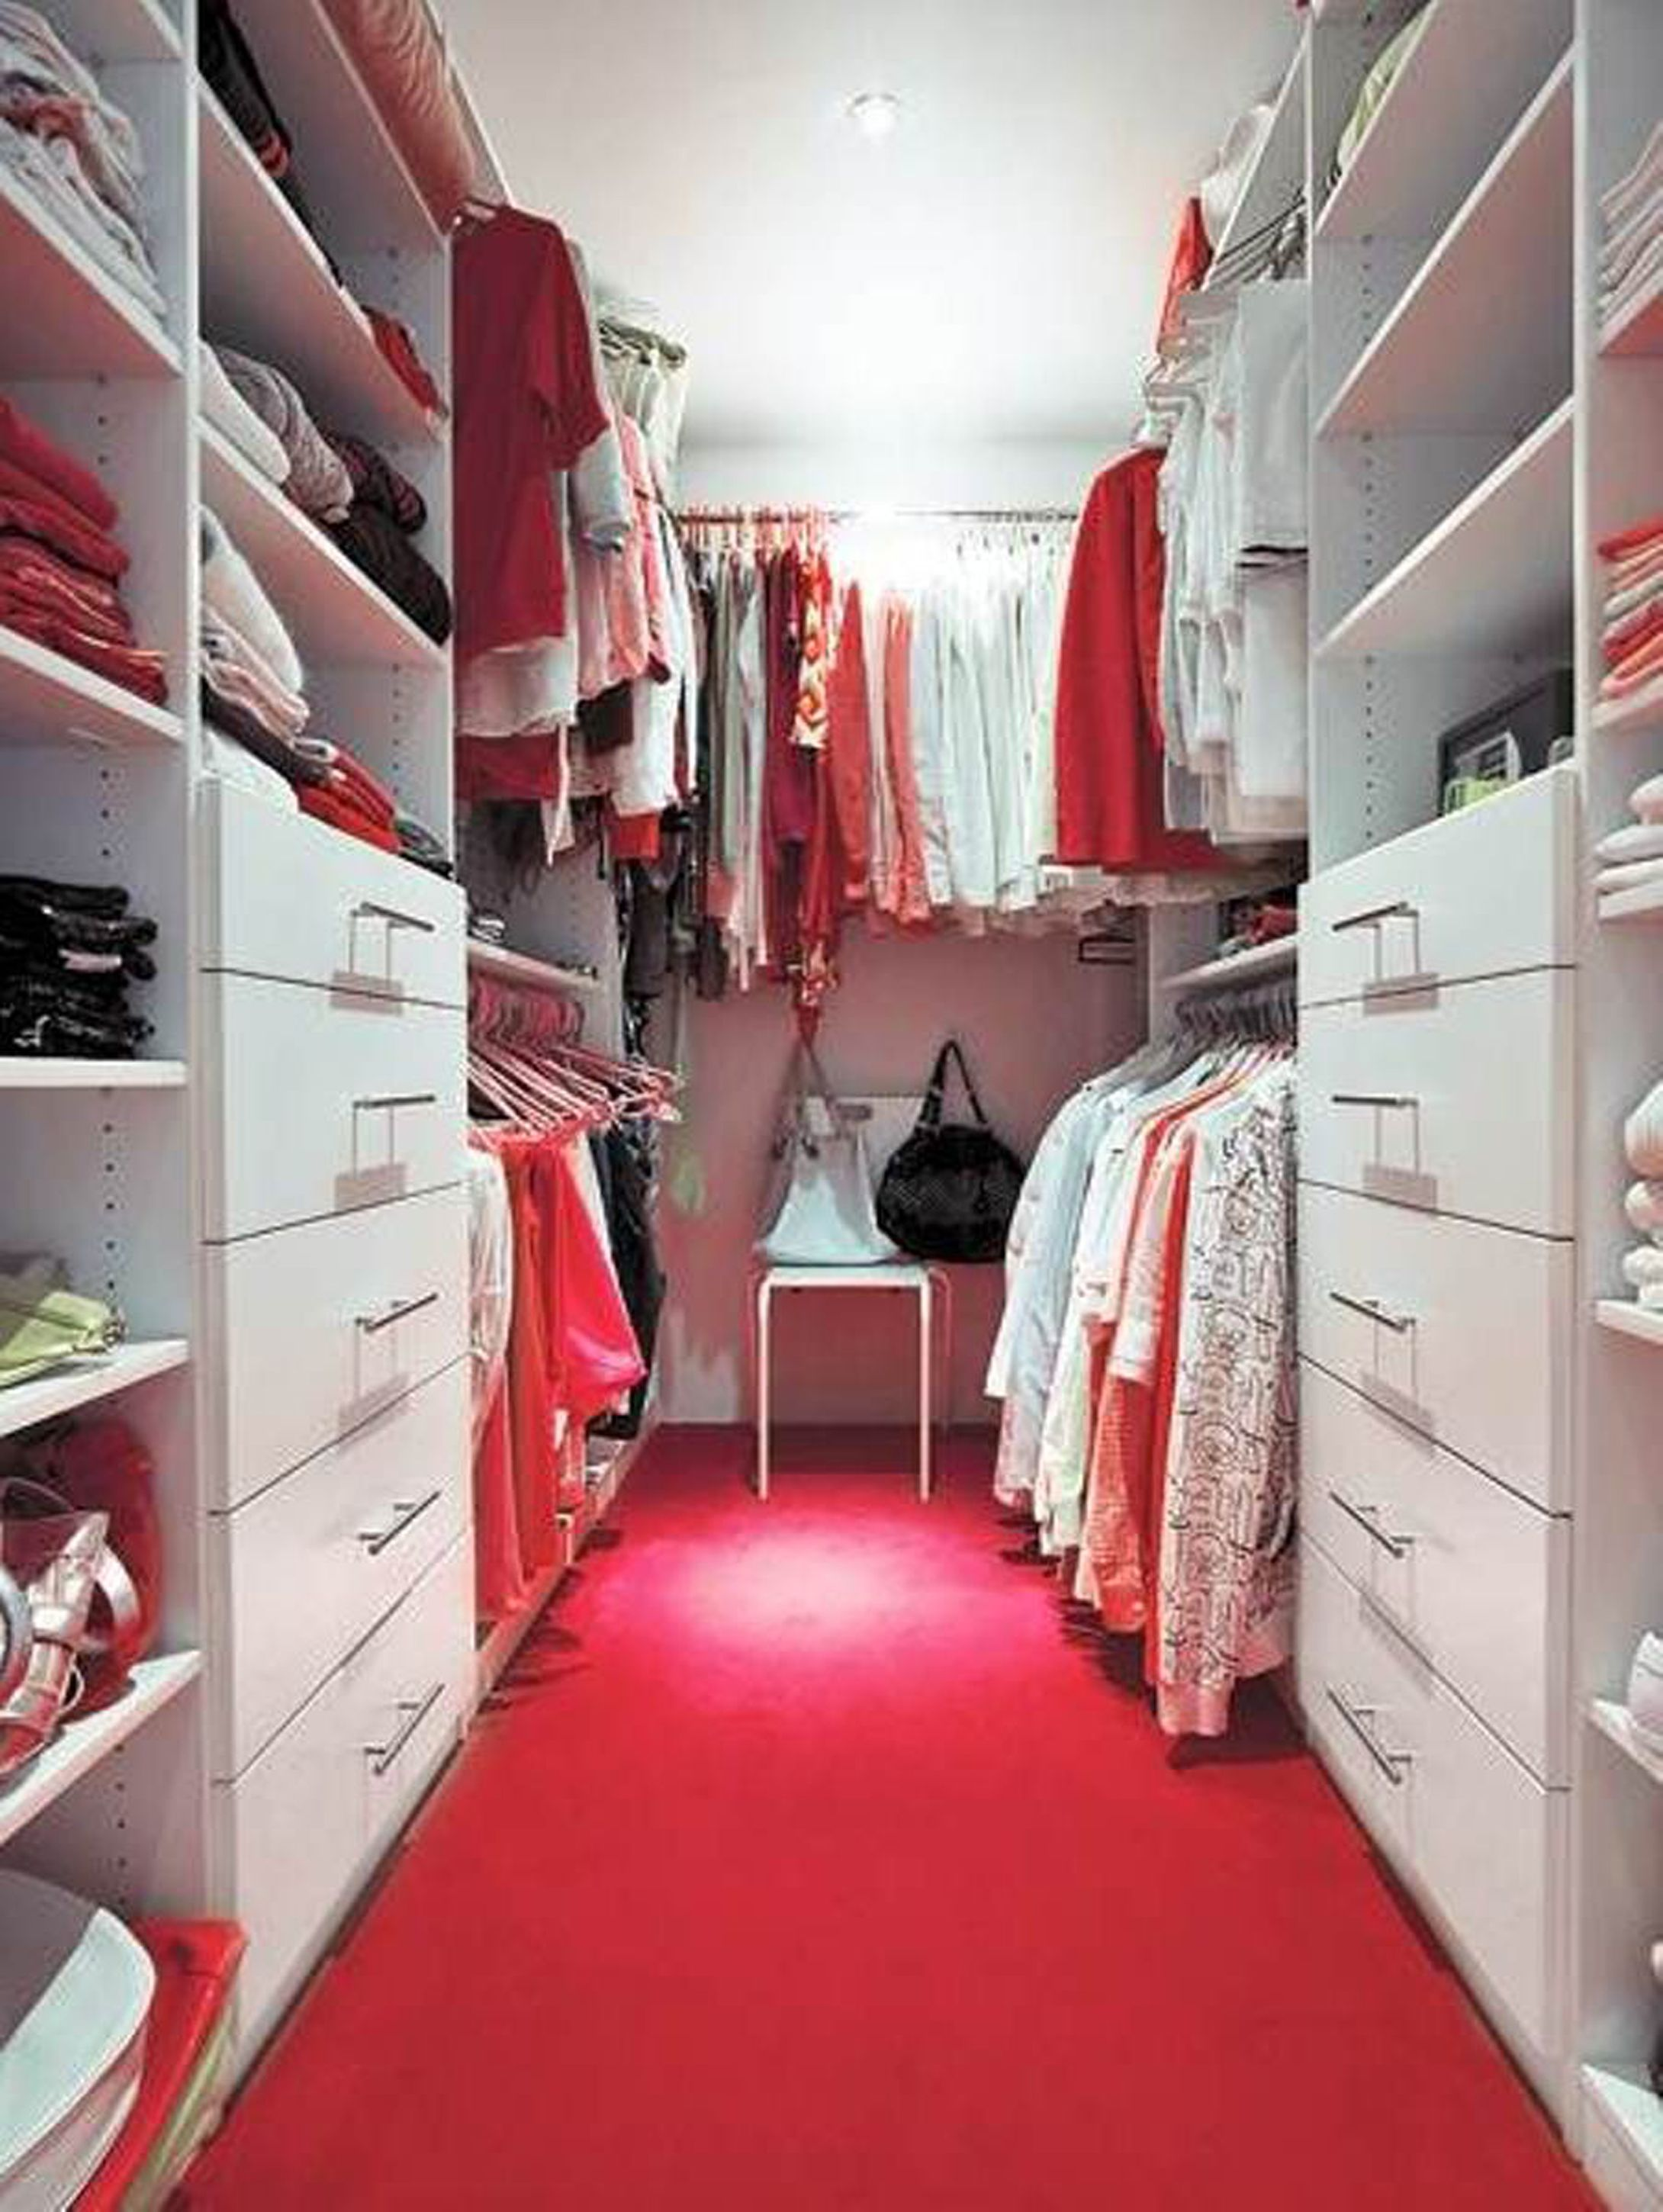 Walk In Closet Design Ideas gallery of image of functional closet storage solutions bedroom closet with closet ideas small spaces Small Walk In Closet Design Ideas Stunning Kids Walk In Closets Ideas With White Rack And